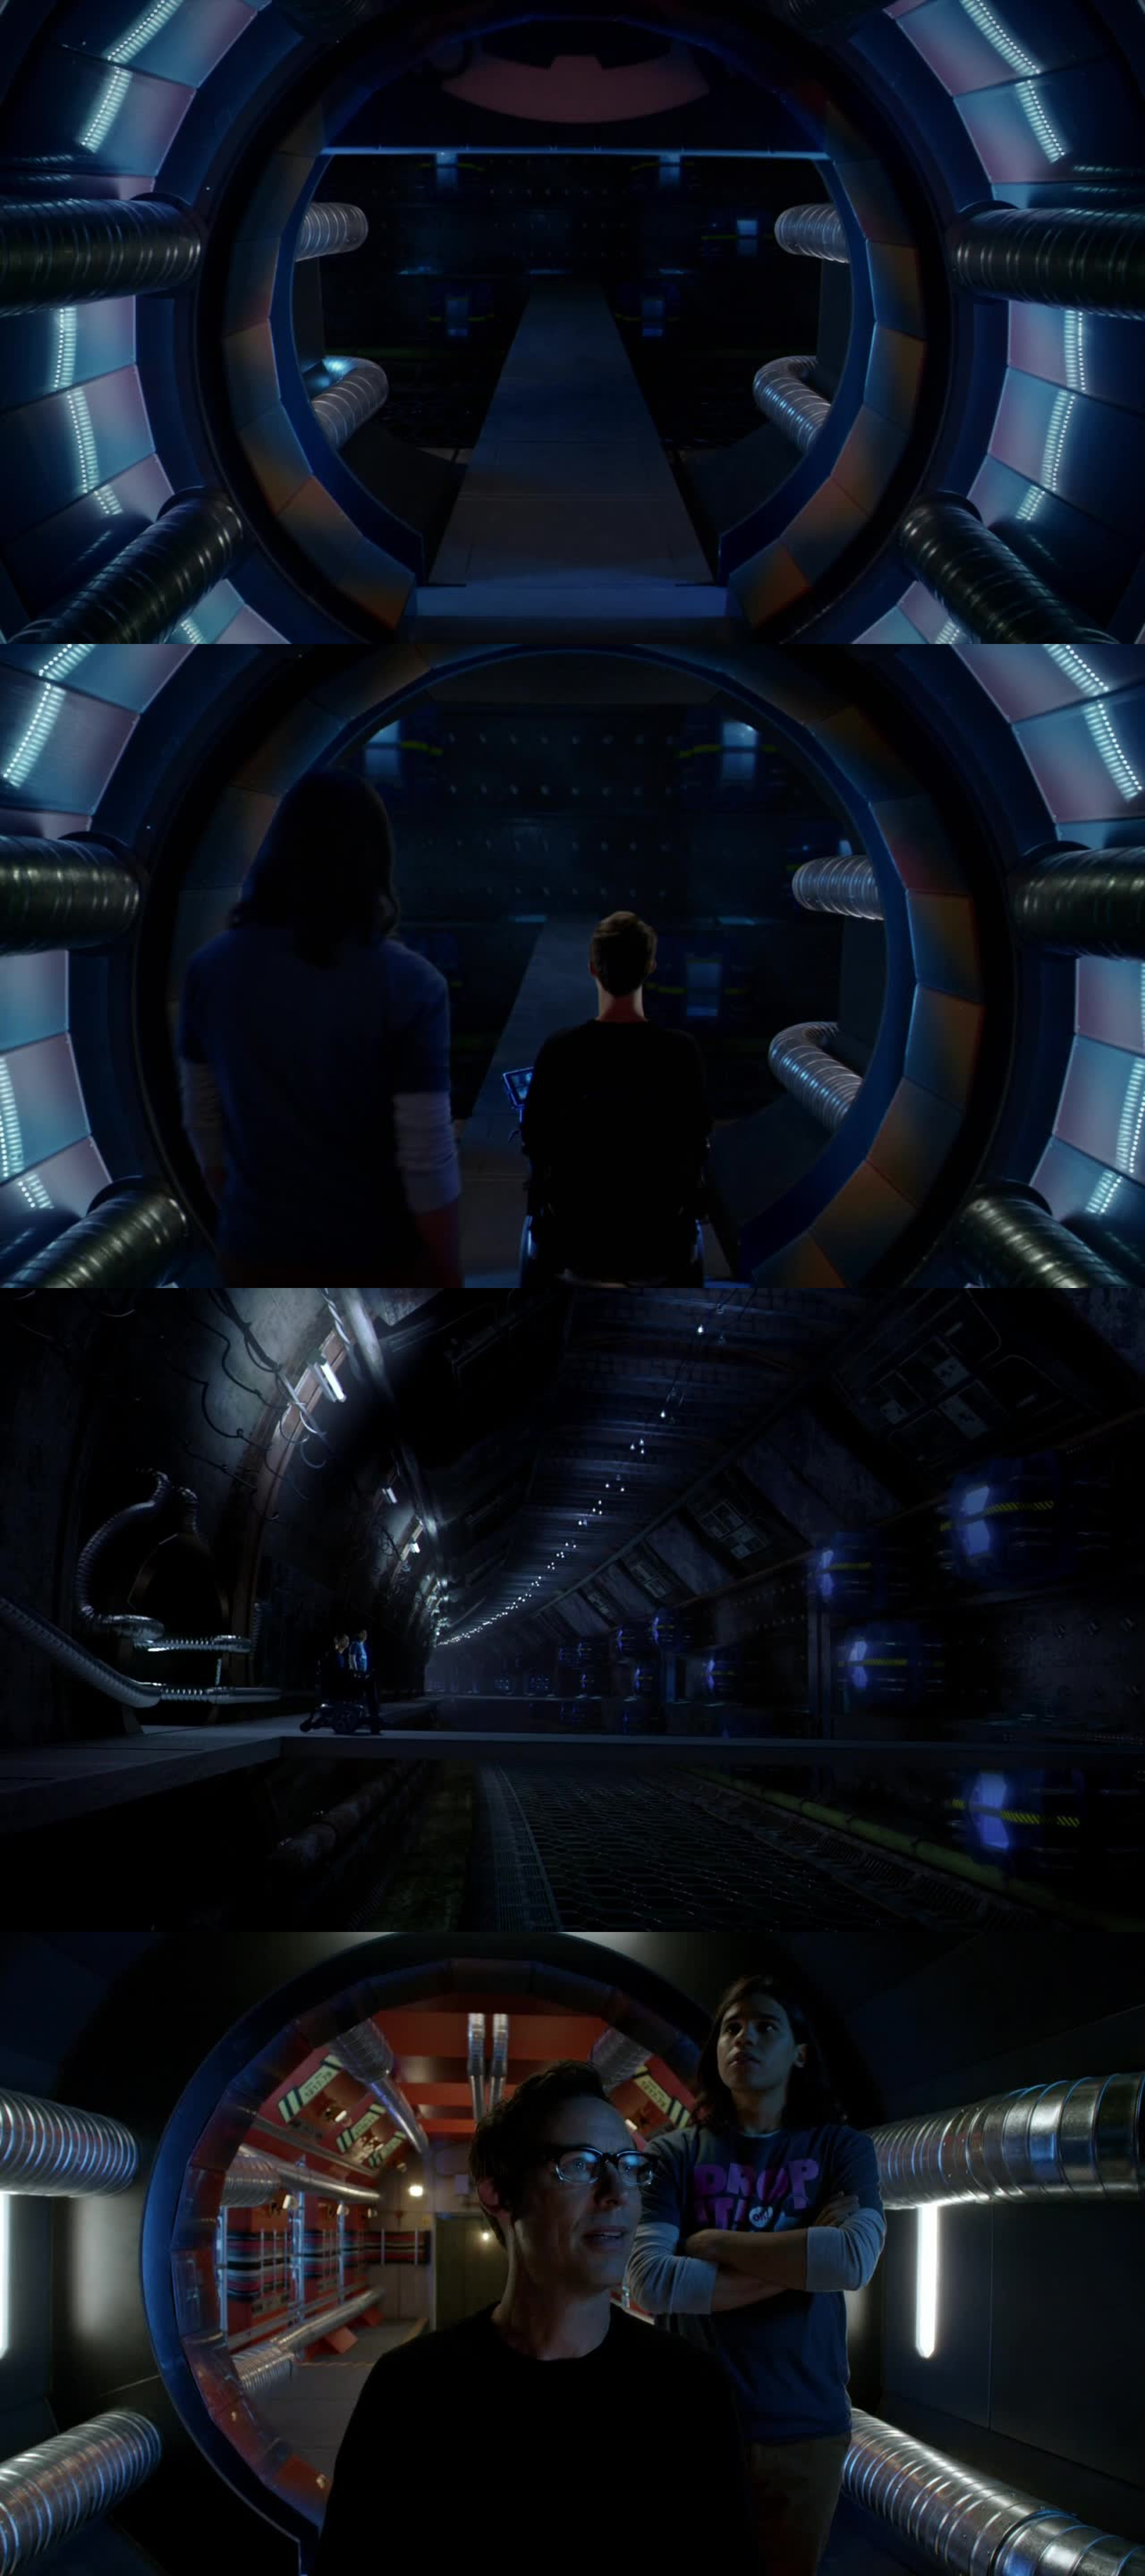 This scene reminds me of Charles Xavier and Cerebro.